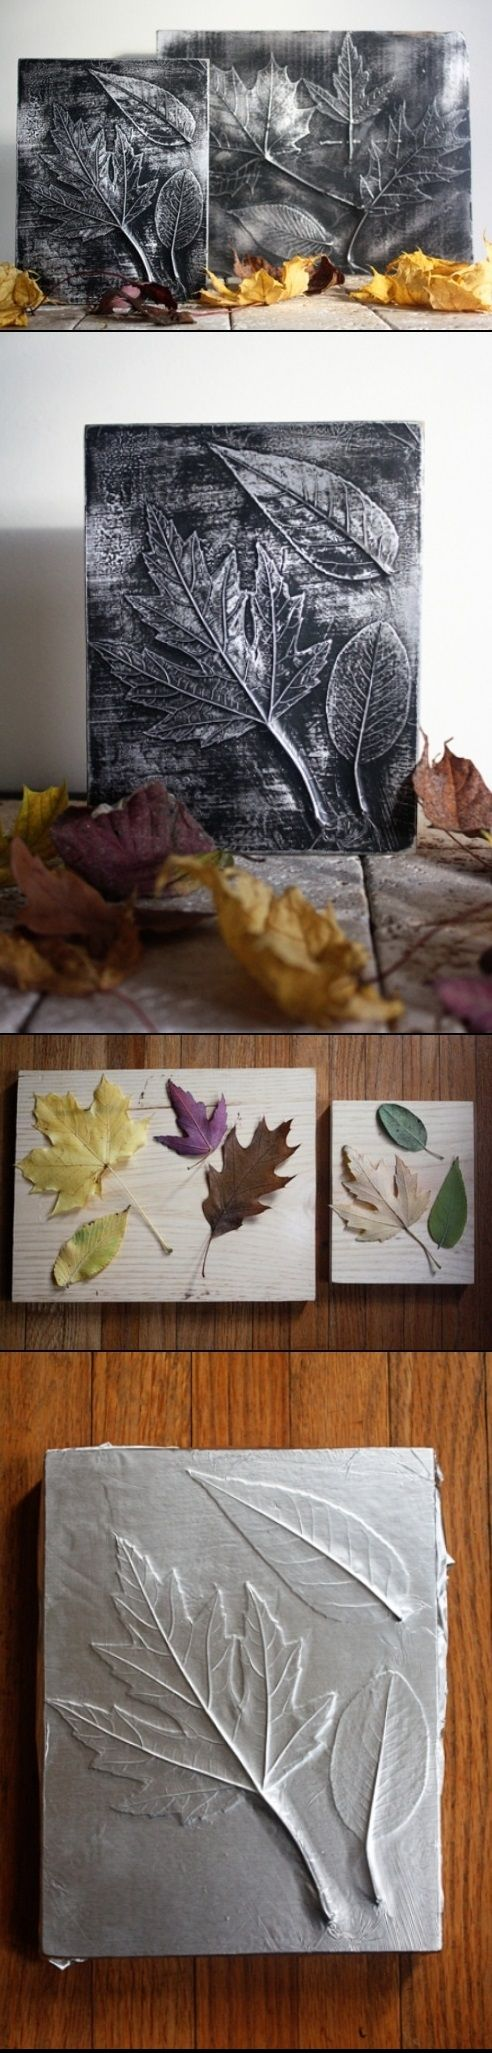 DIY Leaf Decor - DIY Picture. These are so cool! BTW, check out this FREE AWESOME ART APP for mobile: http://artcaffeine.imobileappsys.com/start.php?adlink=1 Get Inspired!!!